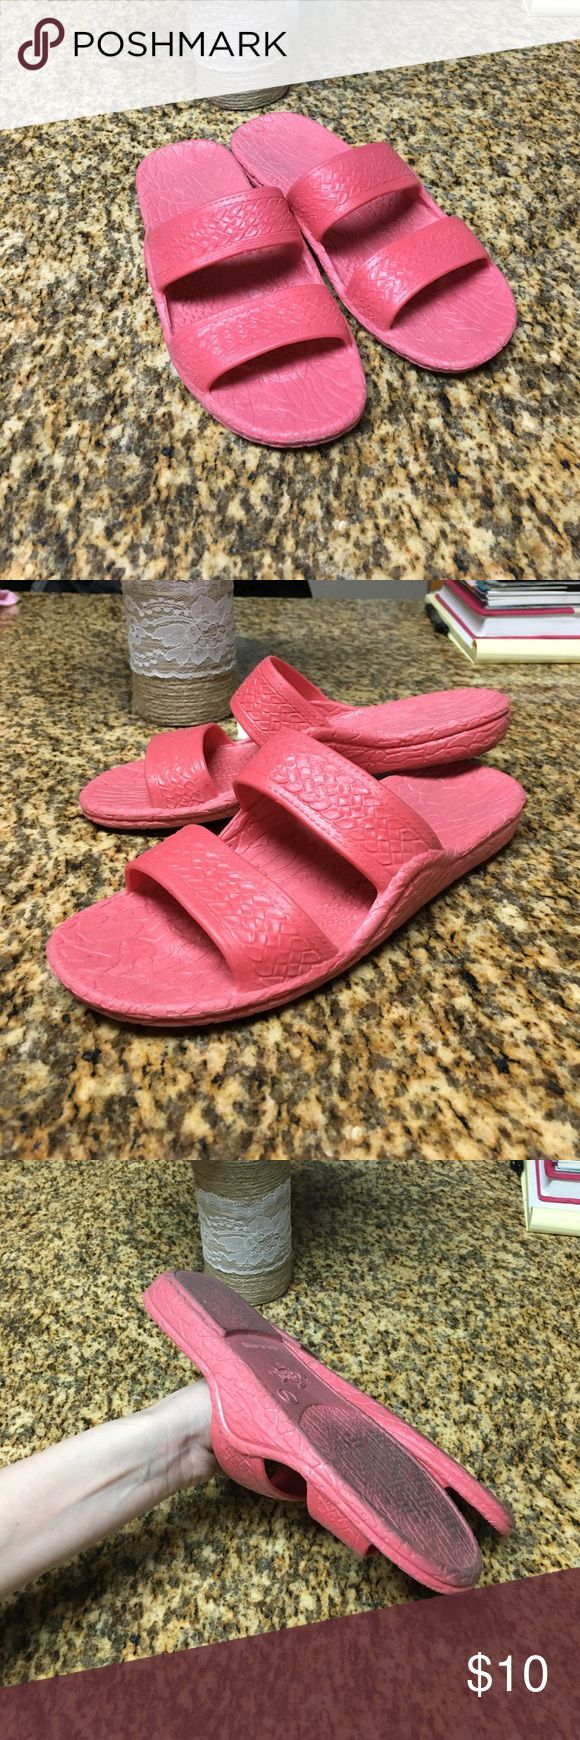 Jesus Sandals Bubblegum pink Jesus sandals! Size 7. Only wore when taking out the trash in my apartment complex  so for about a week total maybe. Super adorable and comfy! Perfect for spring and summer! Shoes Sandals